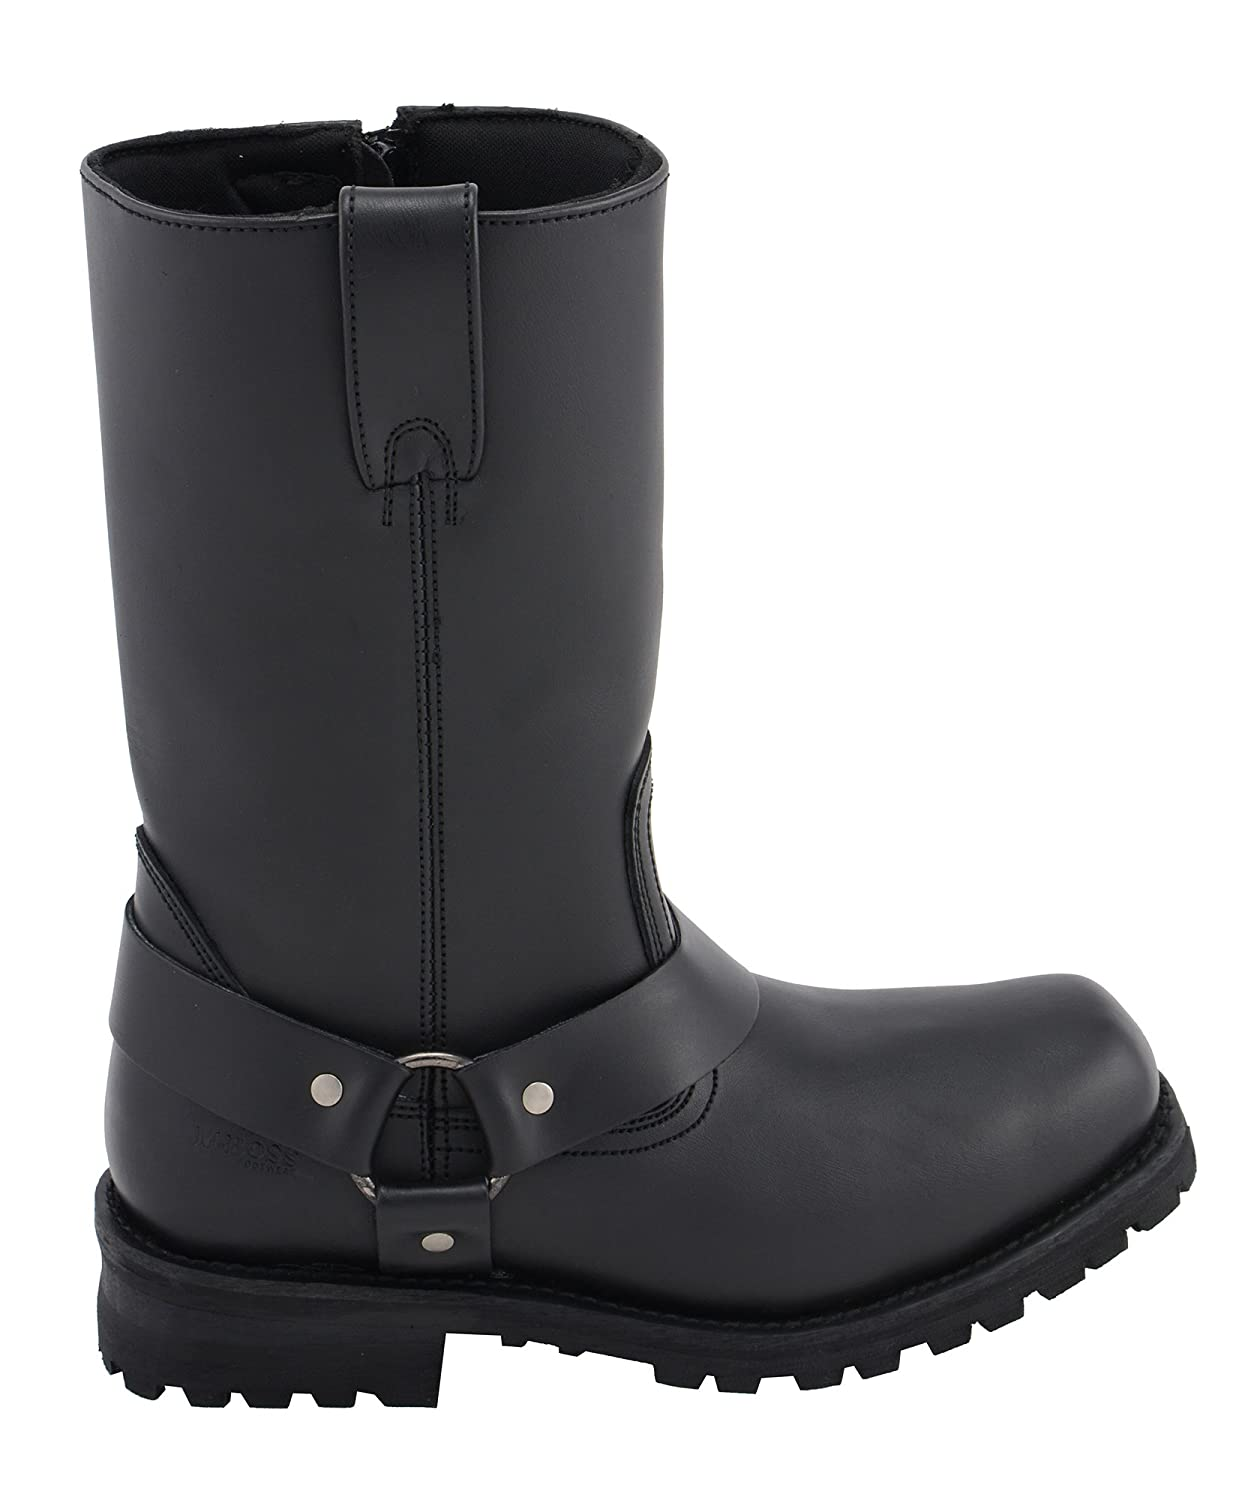 """M-BOSS APPAREL-Mens 12/"""" Classic Harness Leather Motorcycle Boots Black-9.5"""